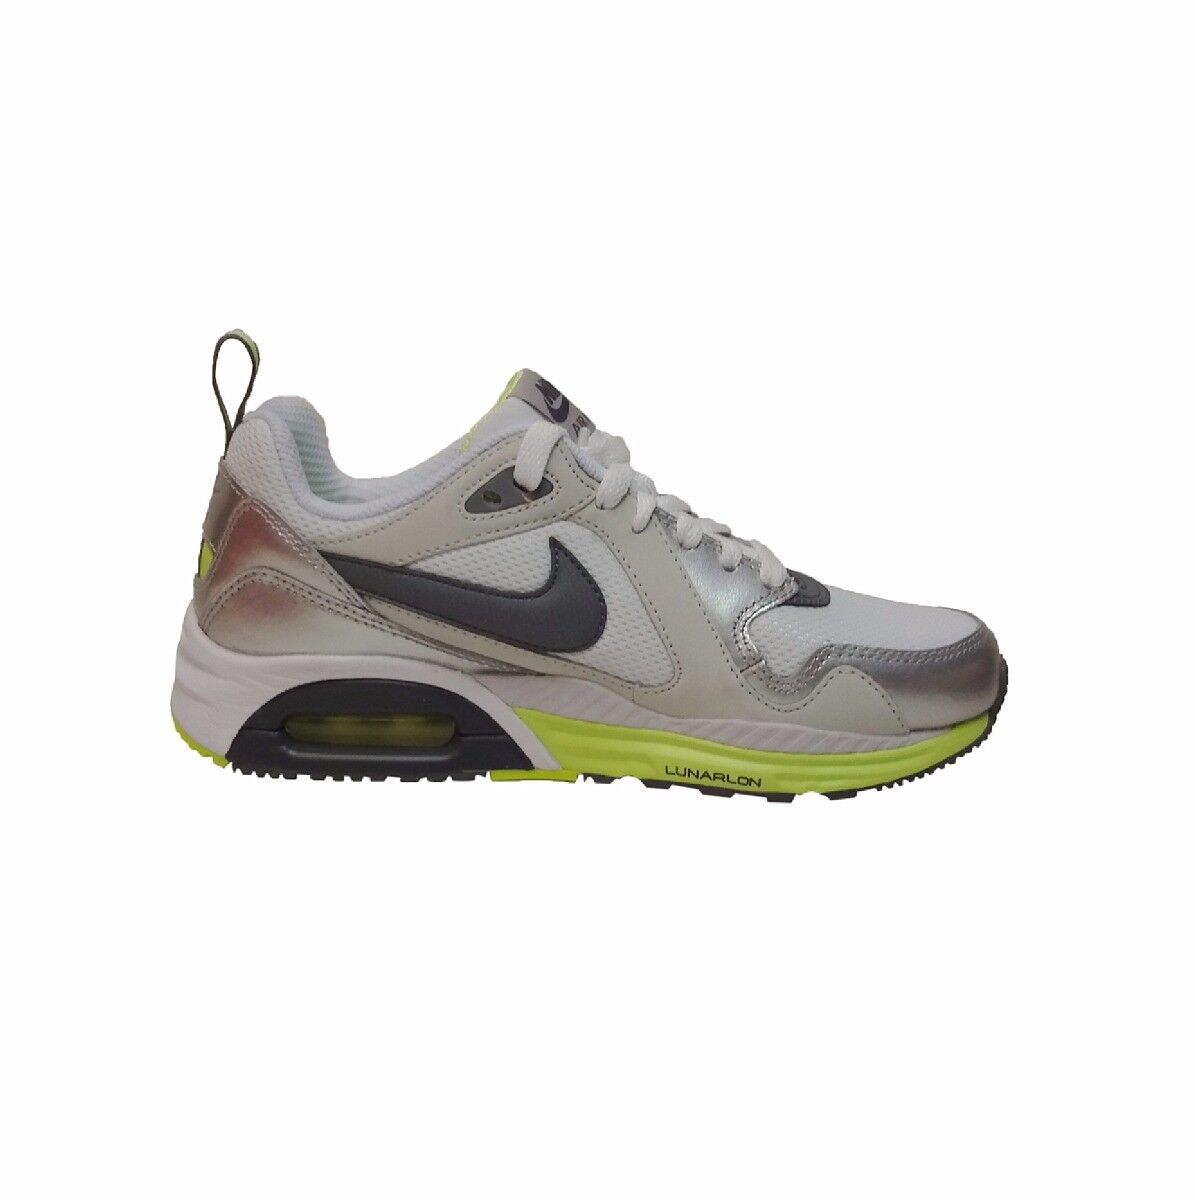 NIKE AIR MAX TRAX  RUNNING TRAINERS SHOE UK SIZE 5.5 6 WHITE GREYS   -